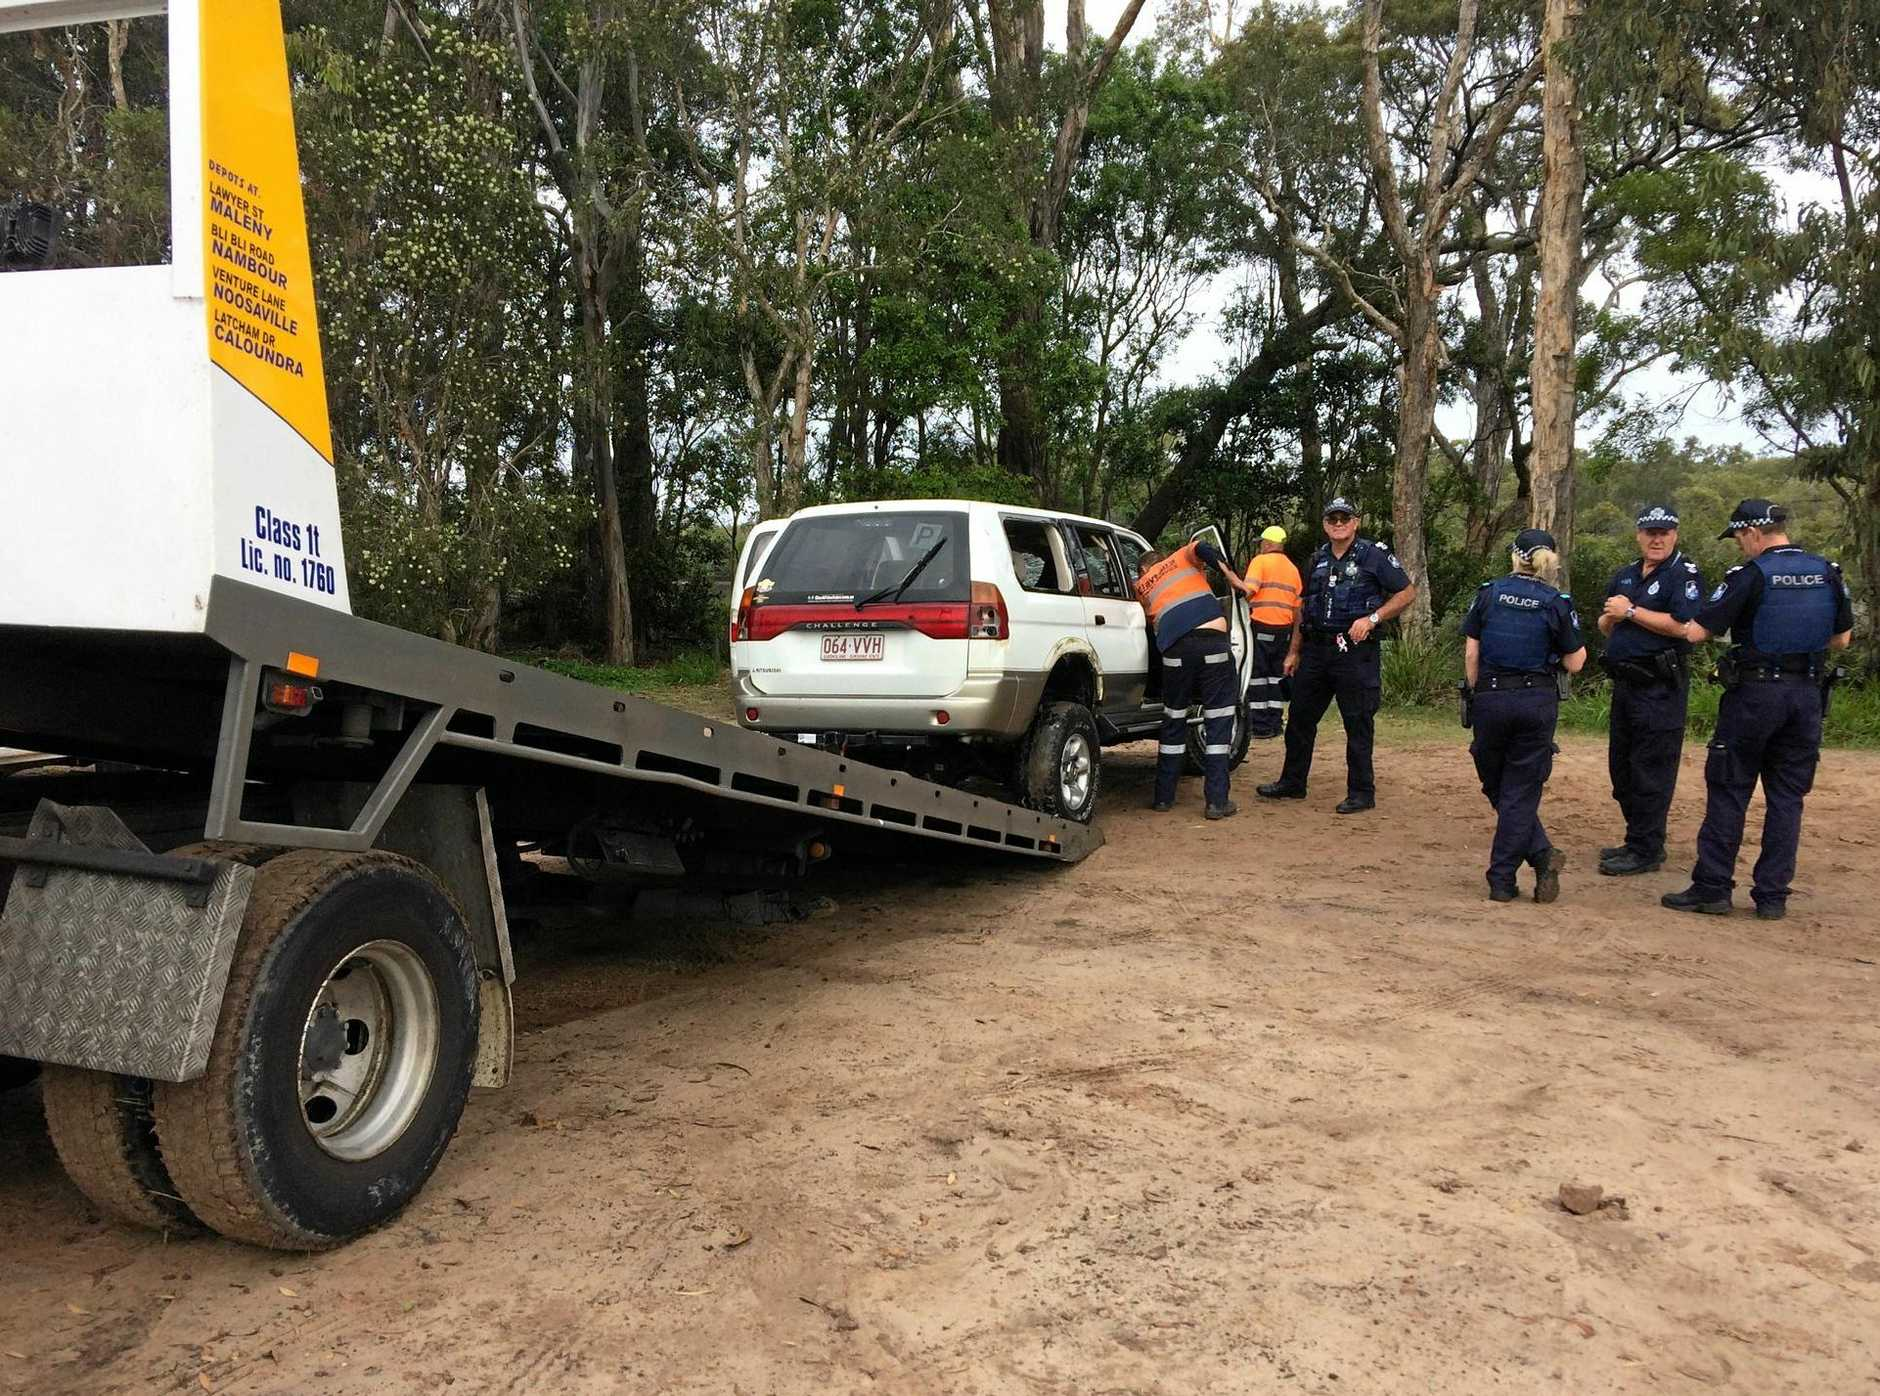 A car found on its roof in the Mooloolah River at Parrearra.